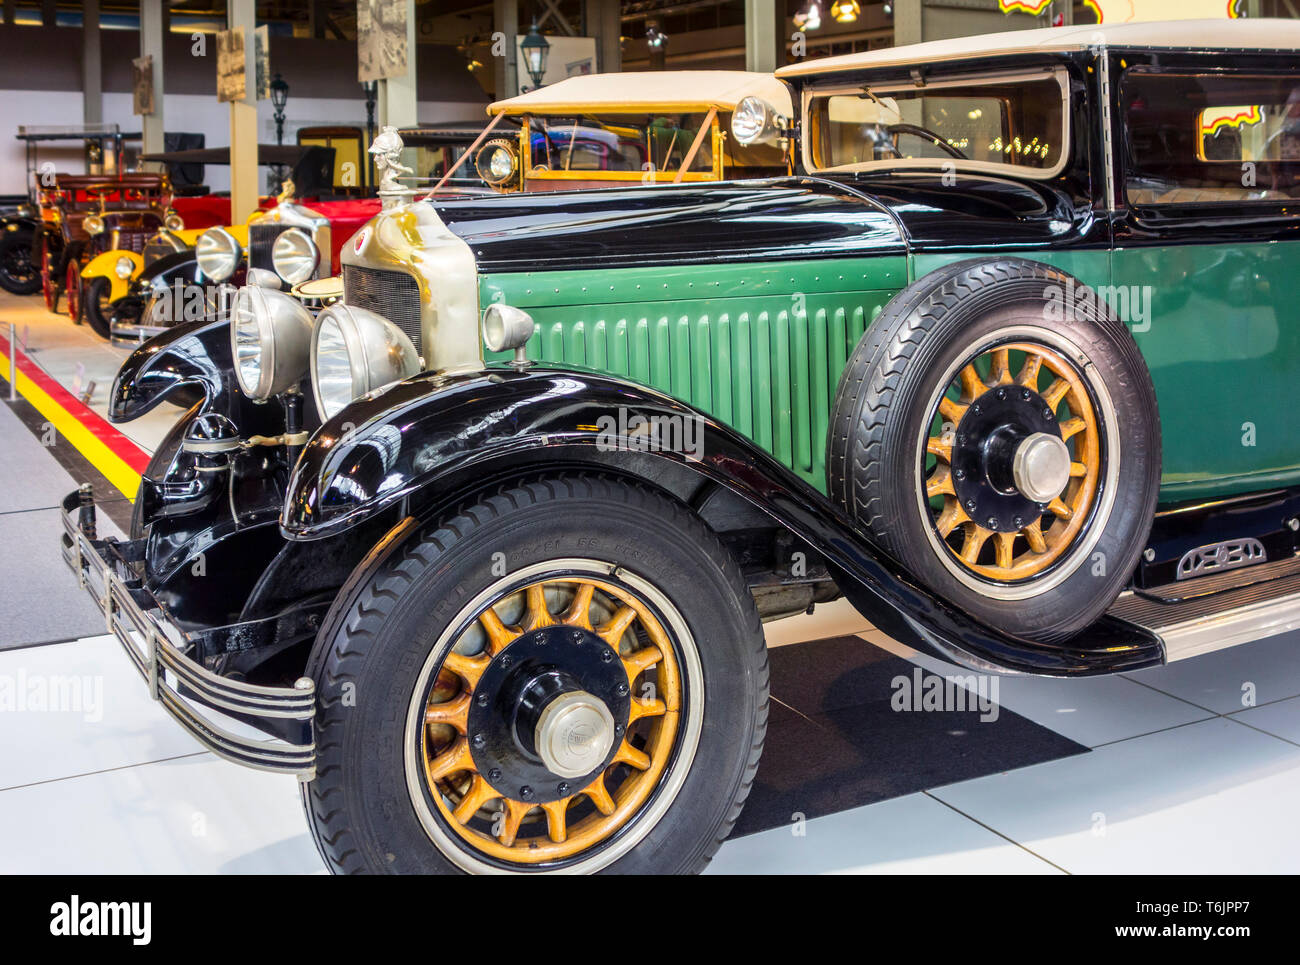 1929 Minerva Type AE Faux Cabriolet, Belgian classic automobile / oldtimer / antique vehicle at Autoworld, vintage car museum in Brussels, Belgium - Stock Image